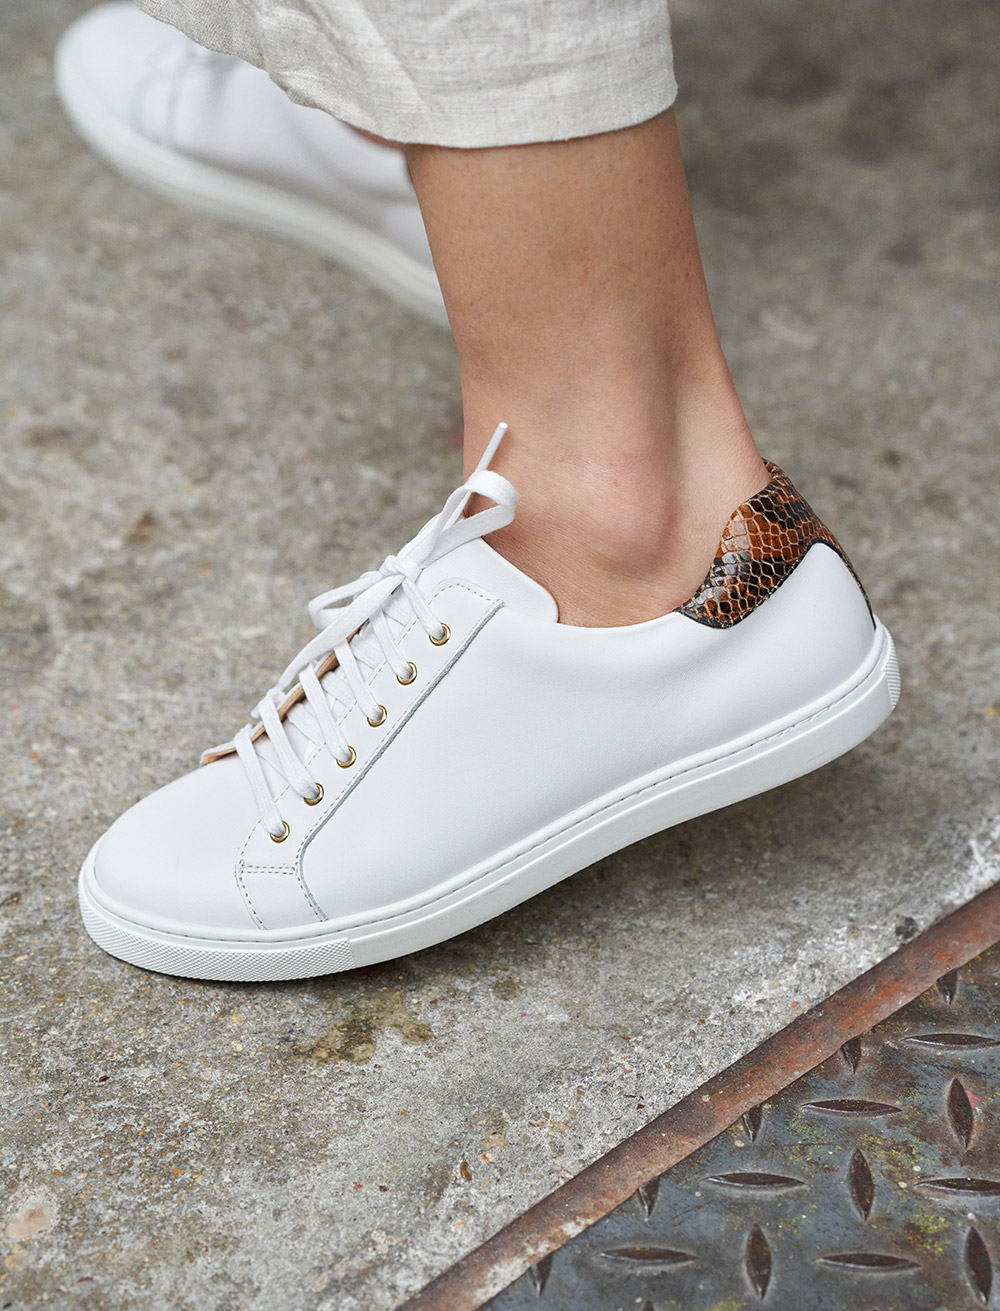 Olivia Sneakers - White and Reptile